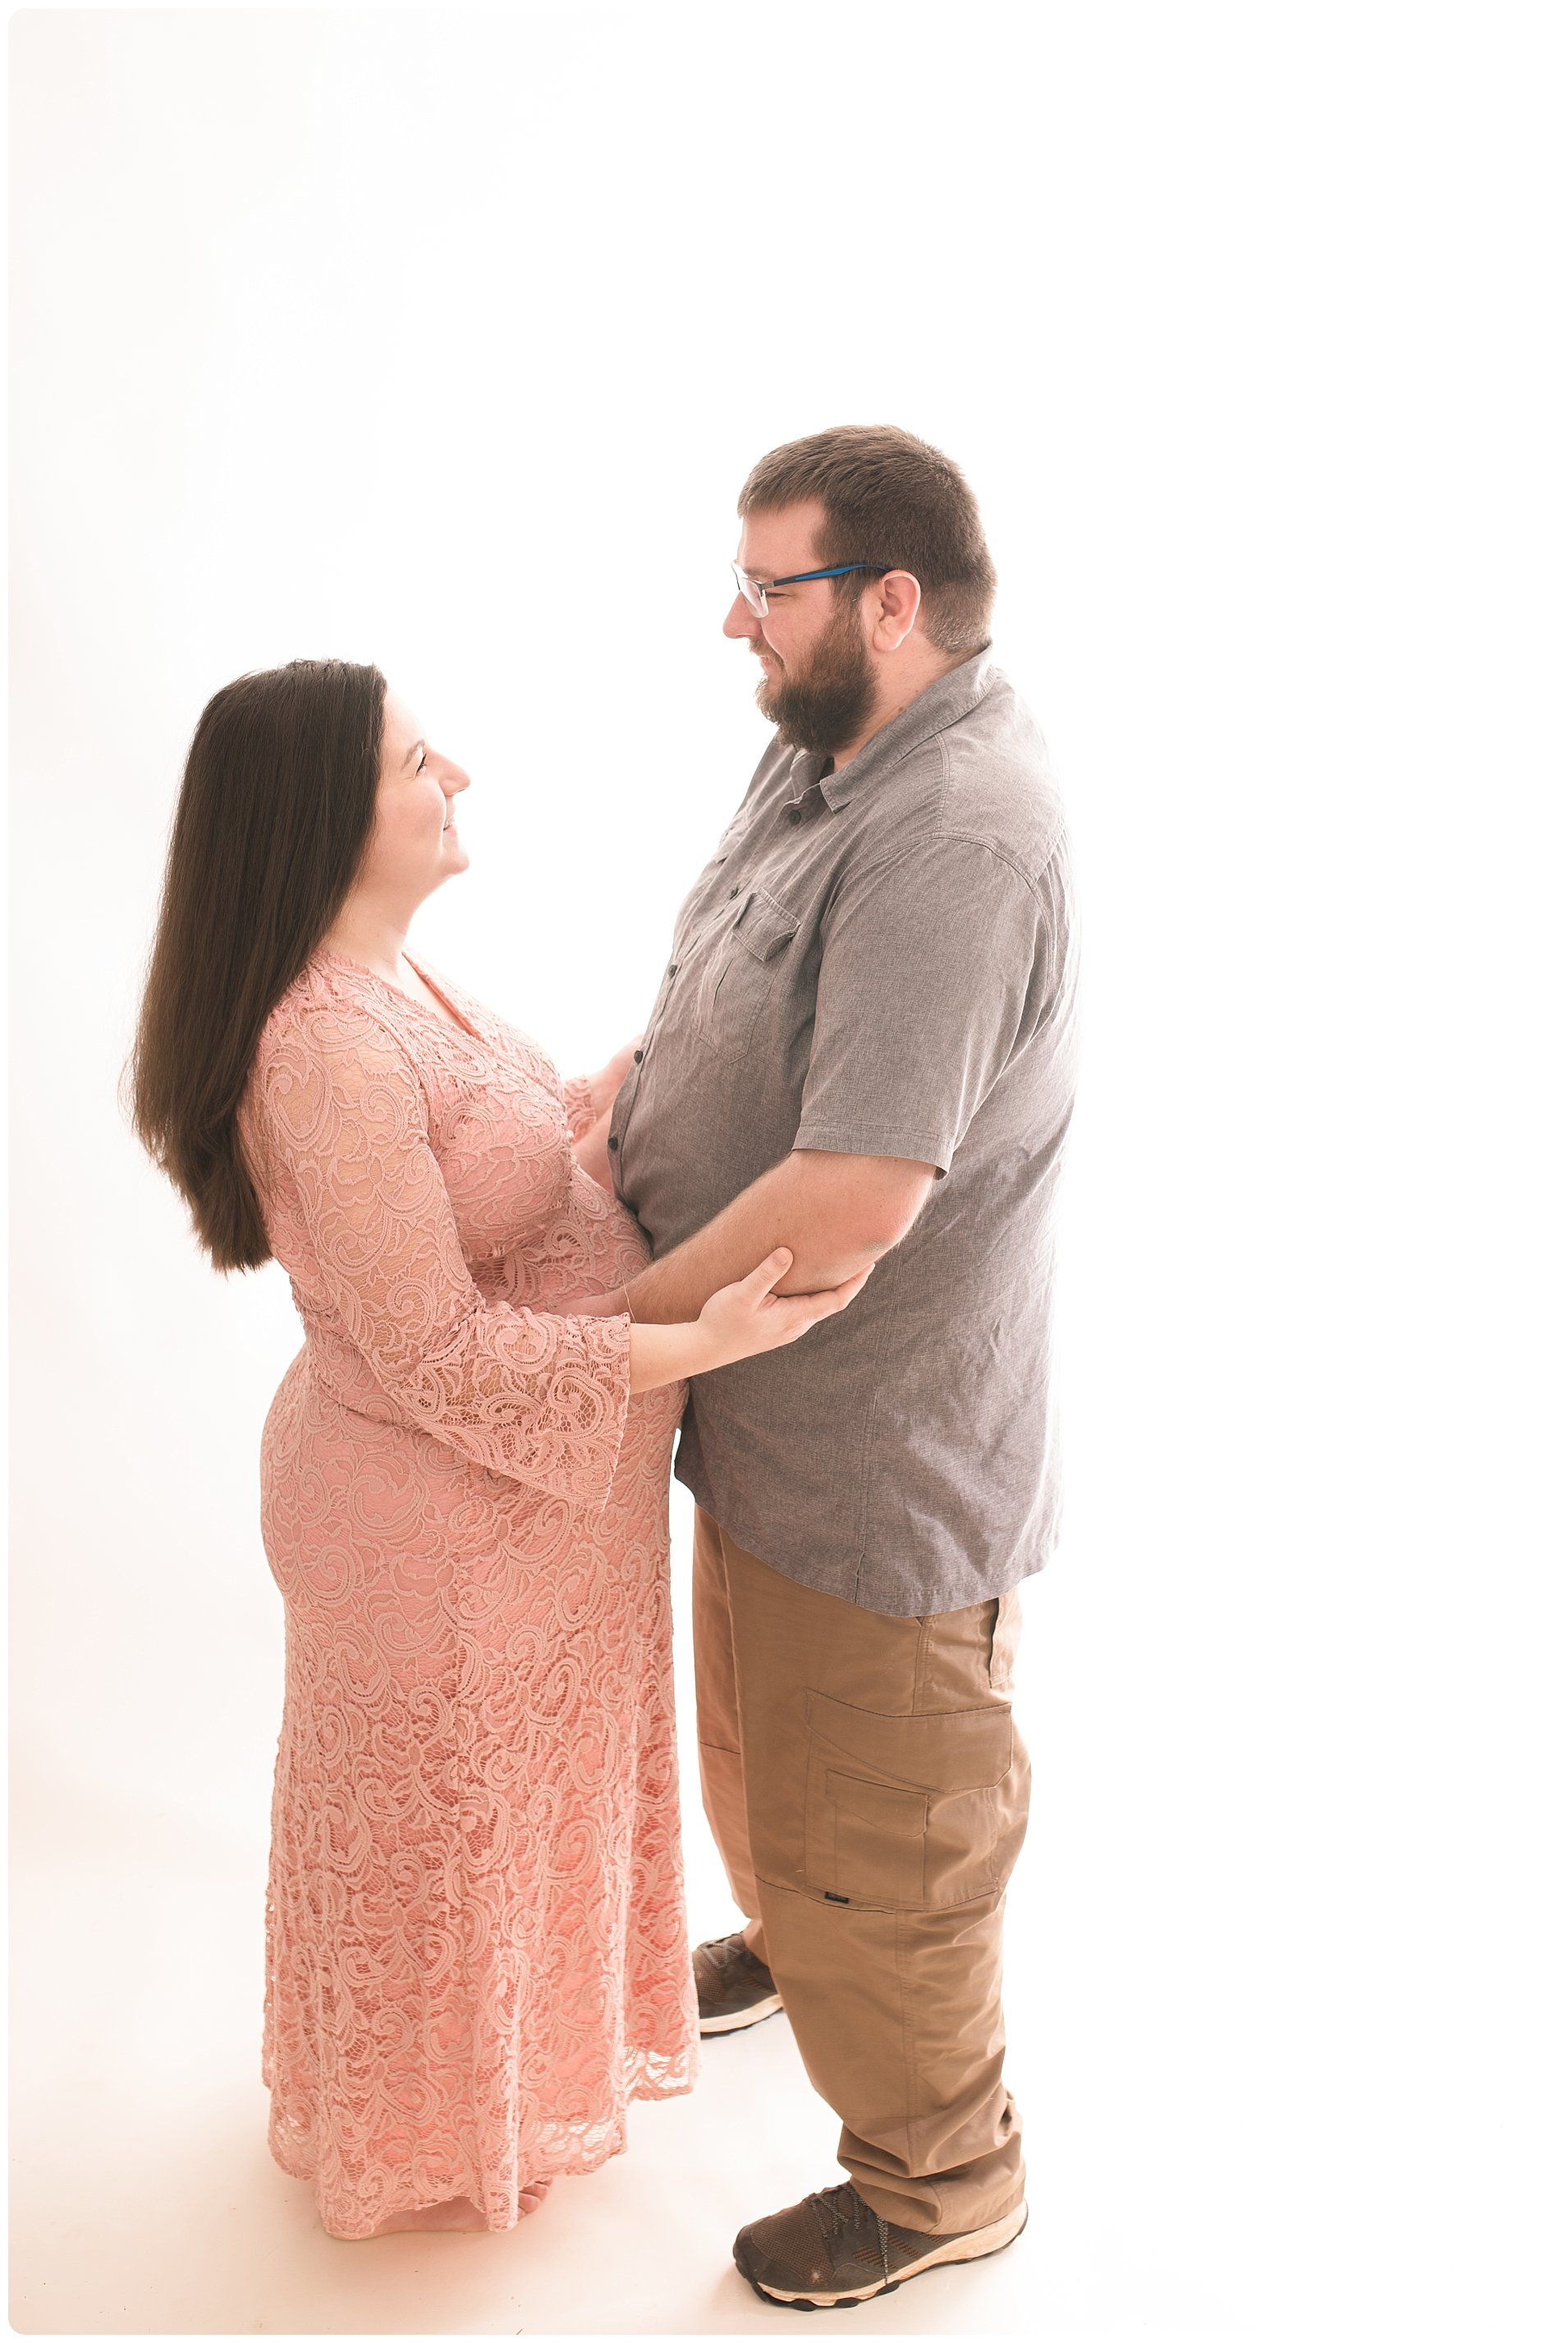 Backlit Maternity Pictures in a Studio. High Key Bright and Light. Greenville SC Maternity Photographer